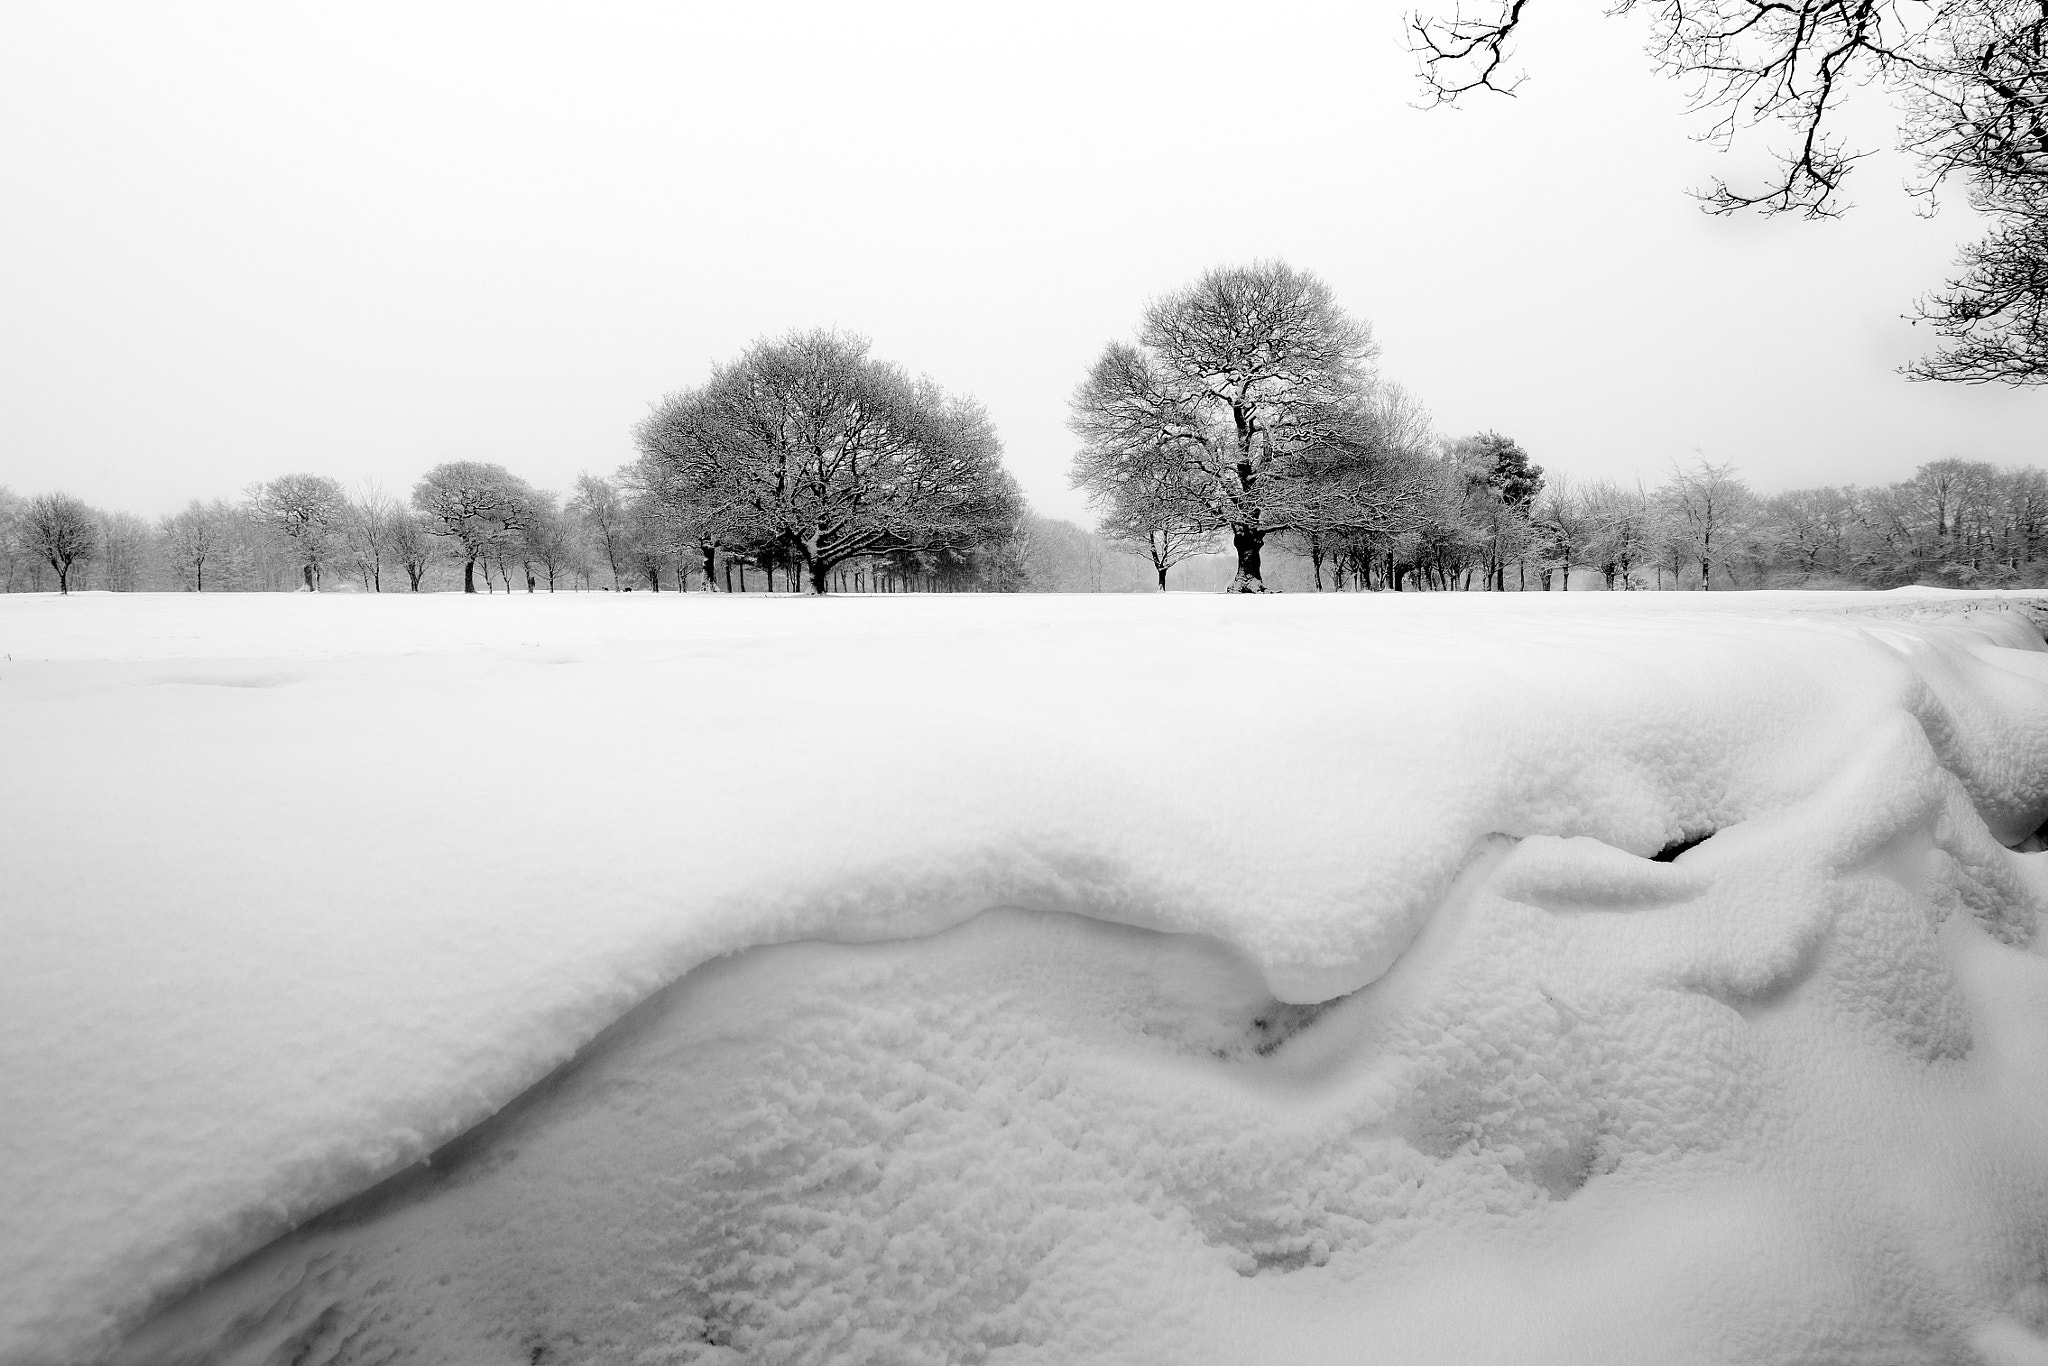 Photograph Snow scape by Mark Tizard on 500px